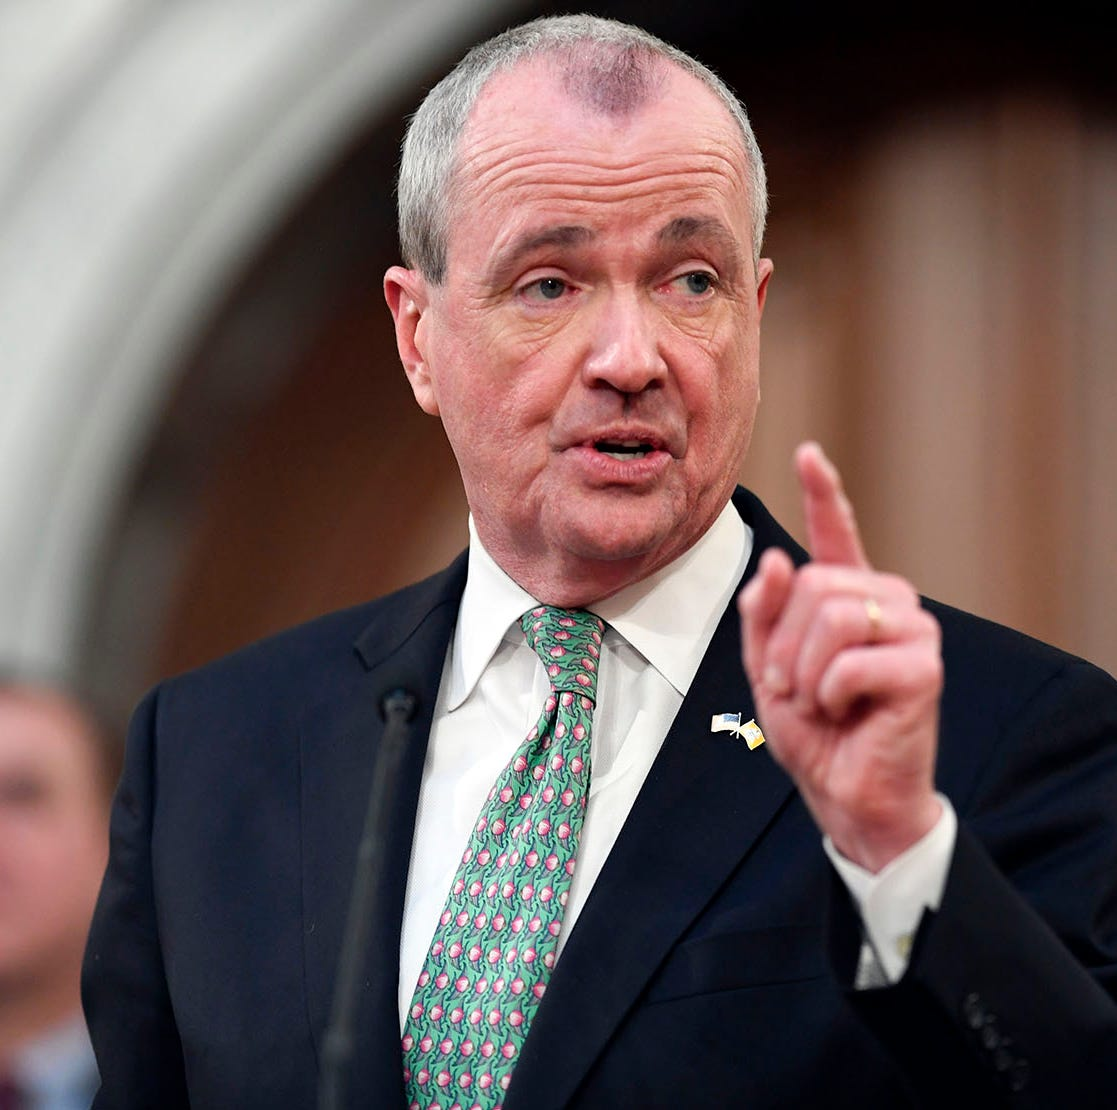 NJ tax break investigation: Murphy wants GOP appointees to resign, but Dems voted same way